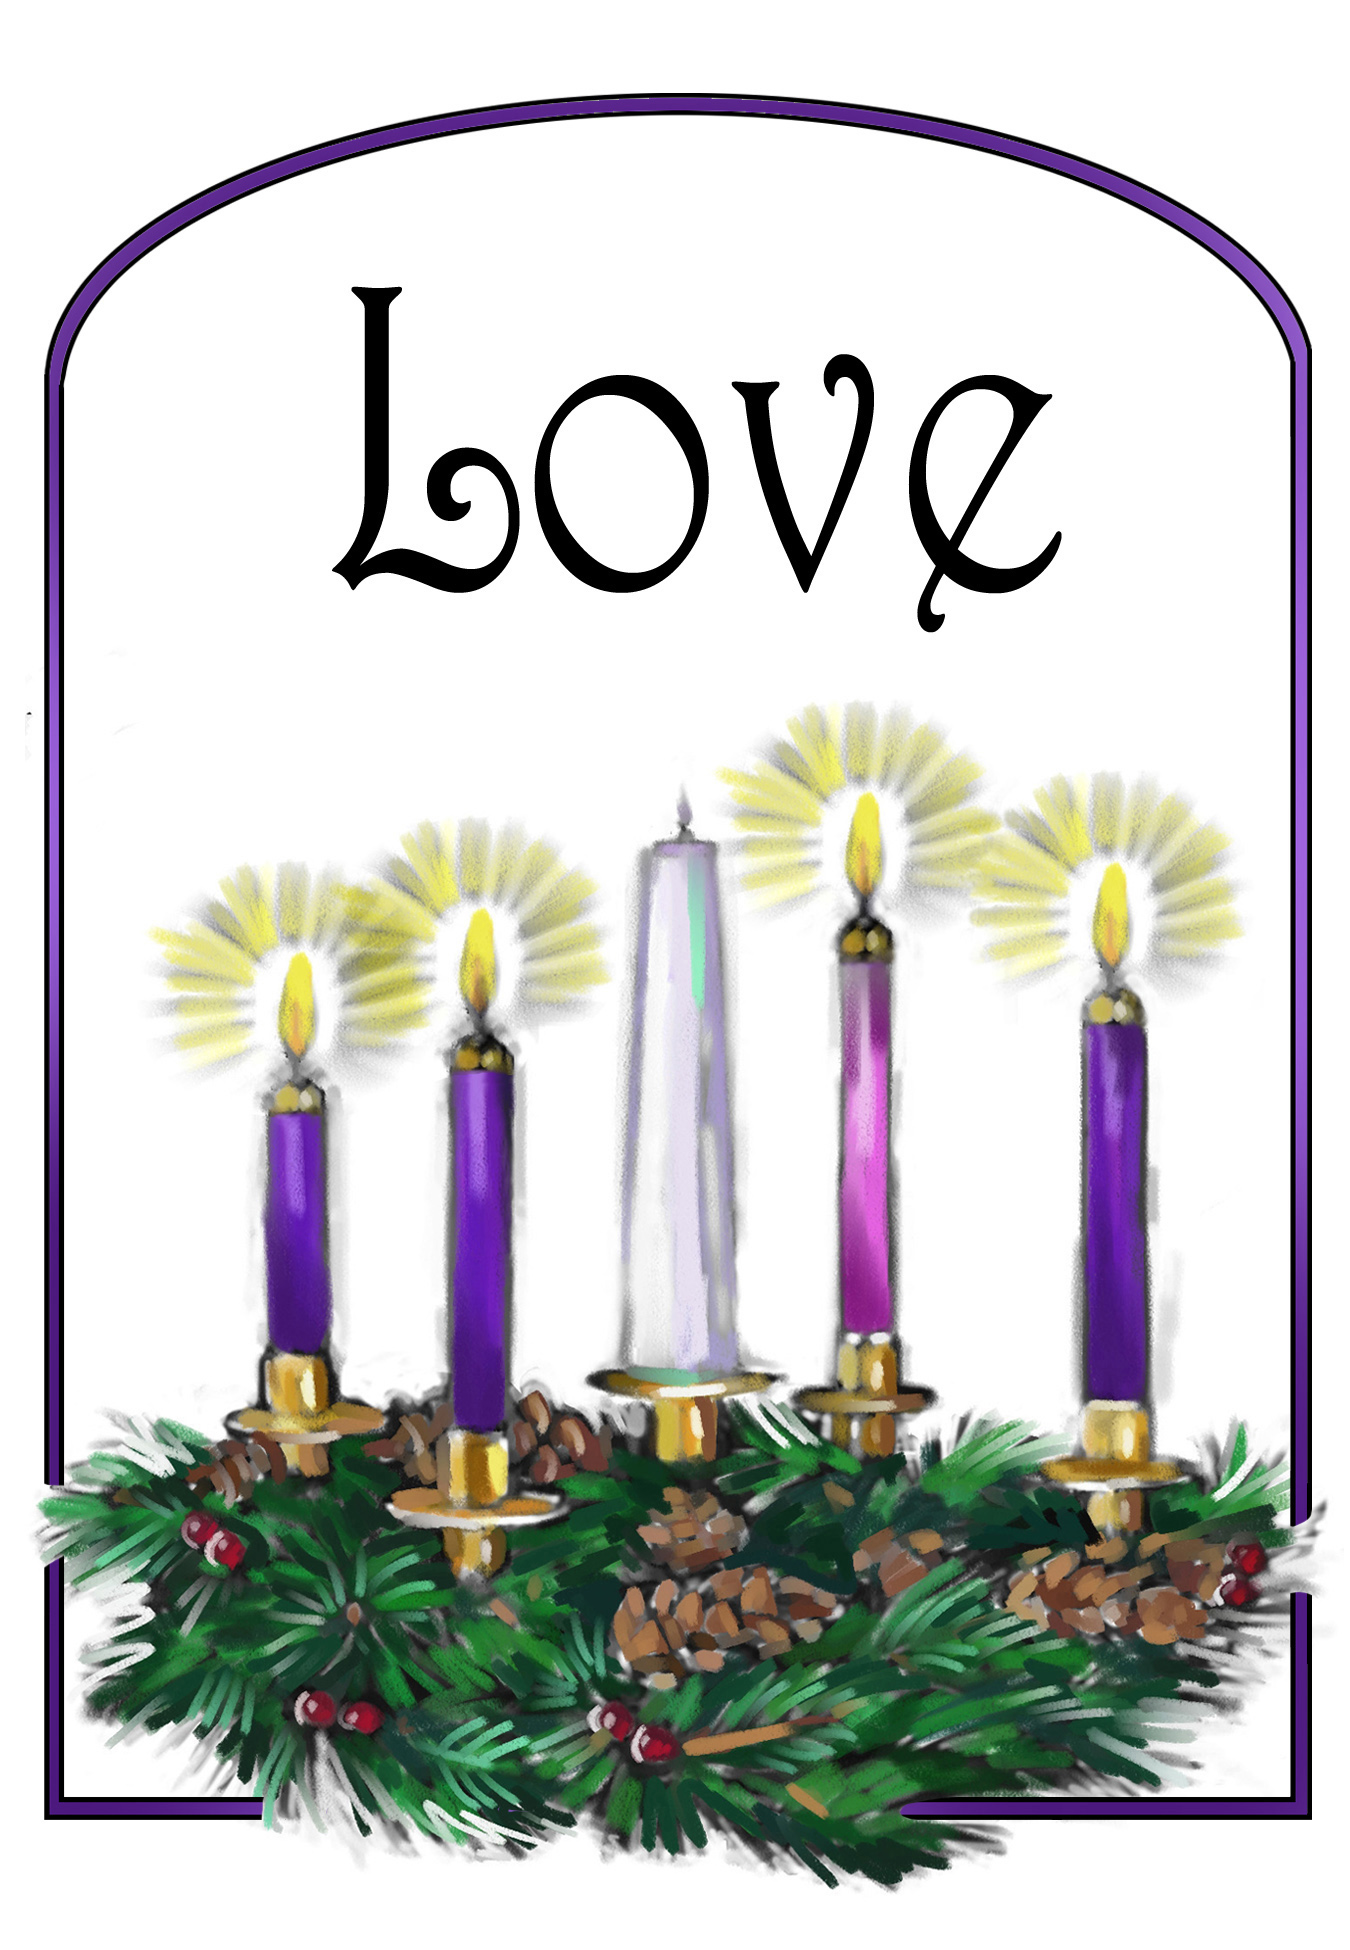 Fourth Sunday in Advent.